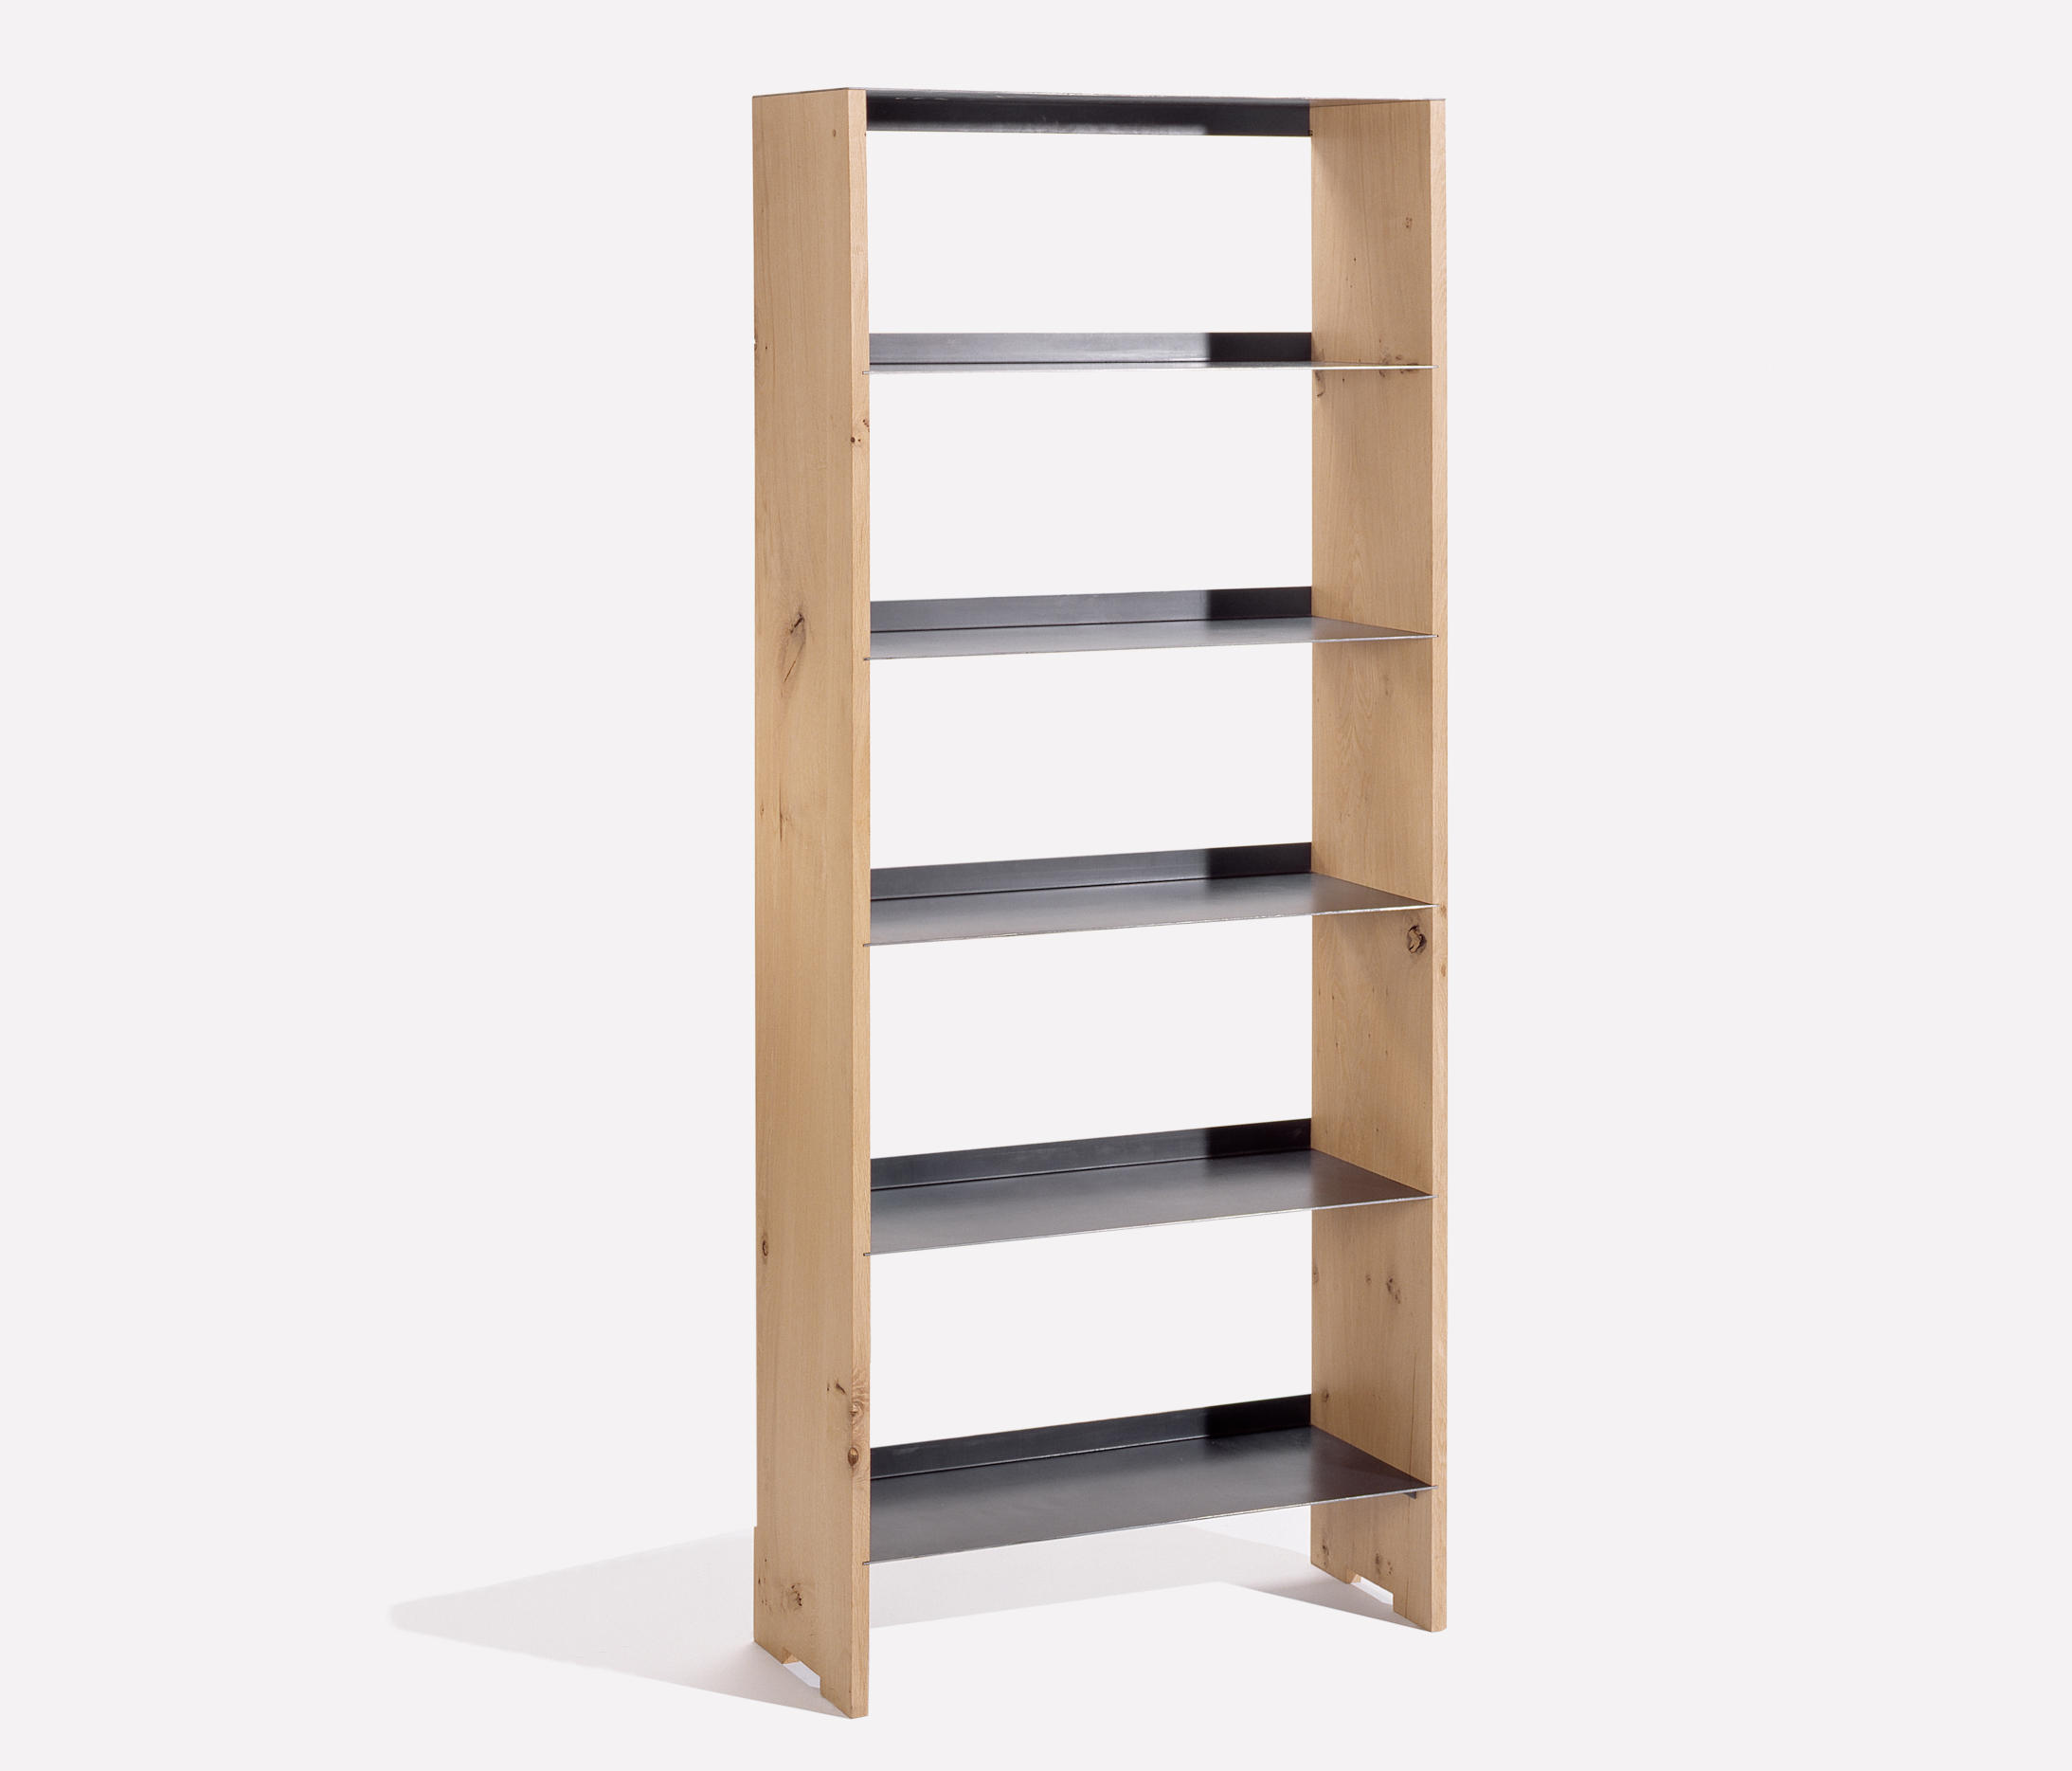 morton shelving sistemi scaffale ufficio lambert architonic. Black Bedroom Furniture Sets. Home Design Ideas